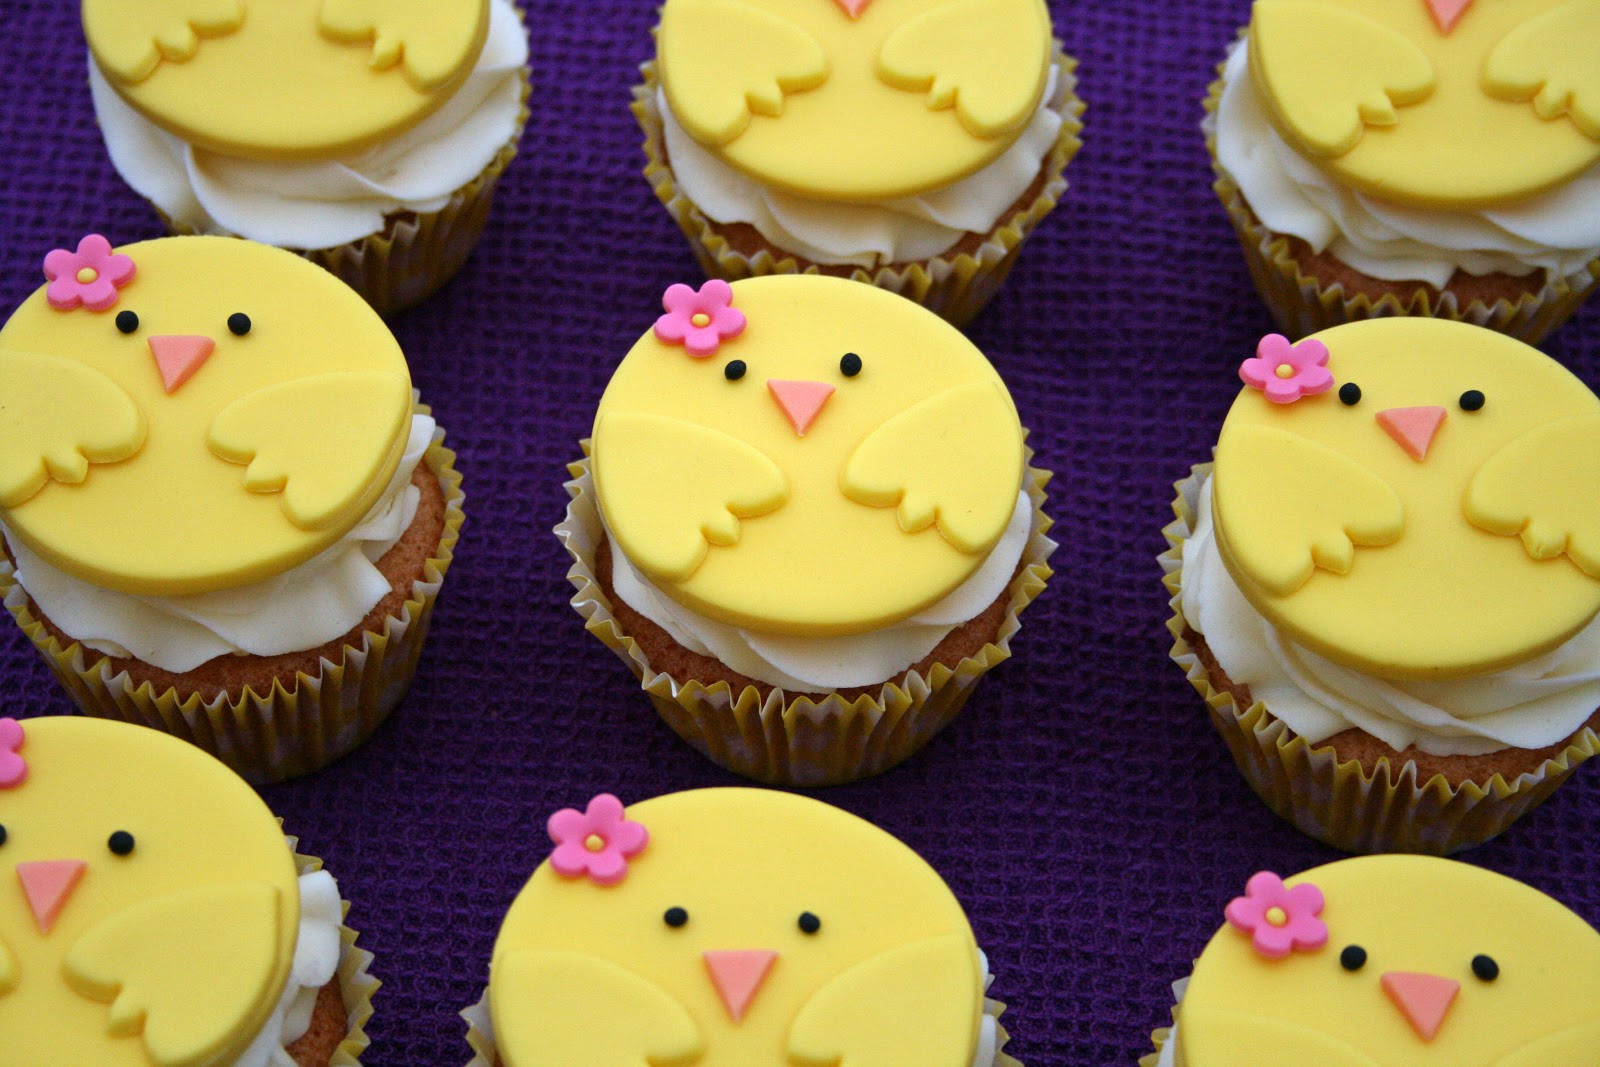 Easter Cupcakes Images  lauralovescakes Chirpy Chick Easter Cupcakes